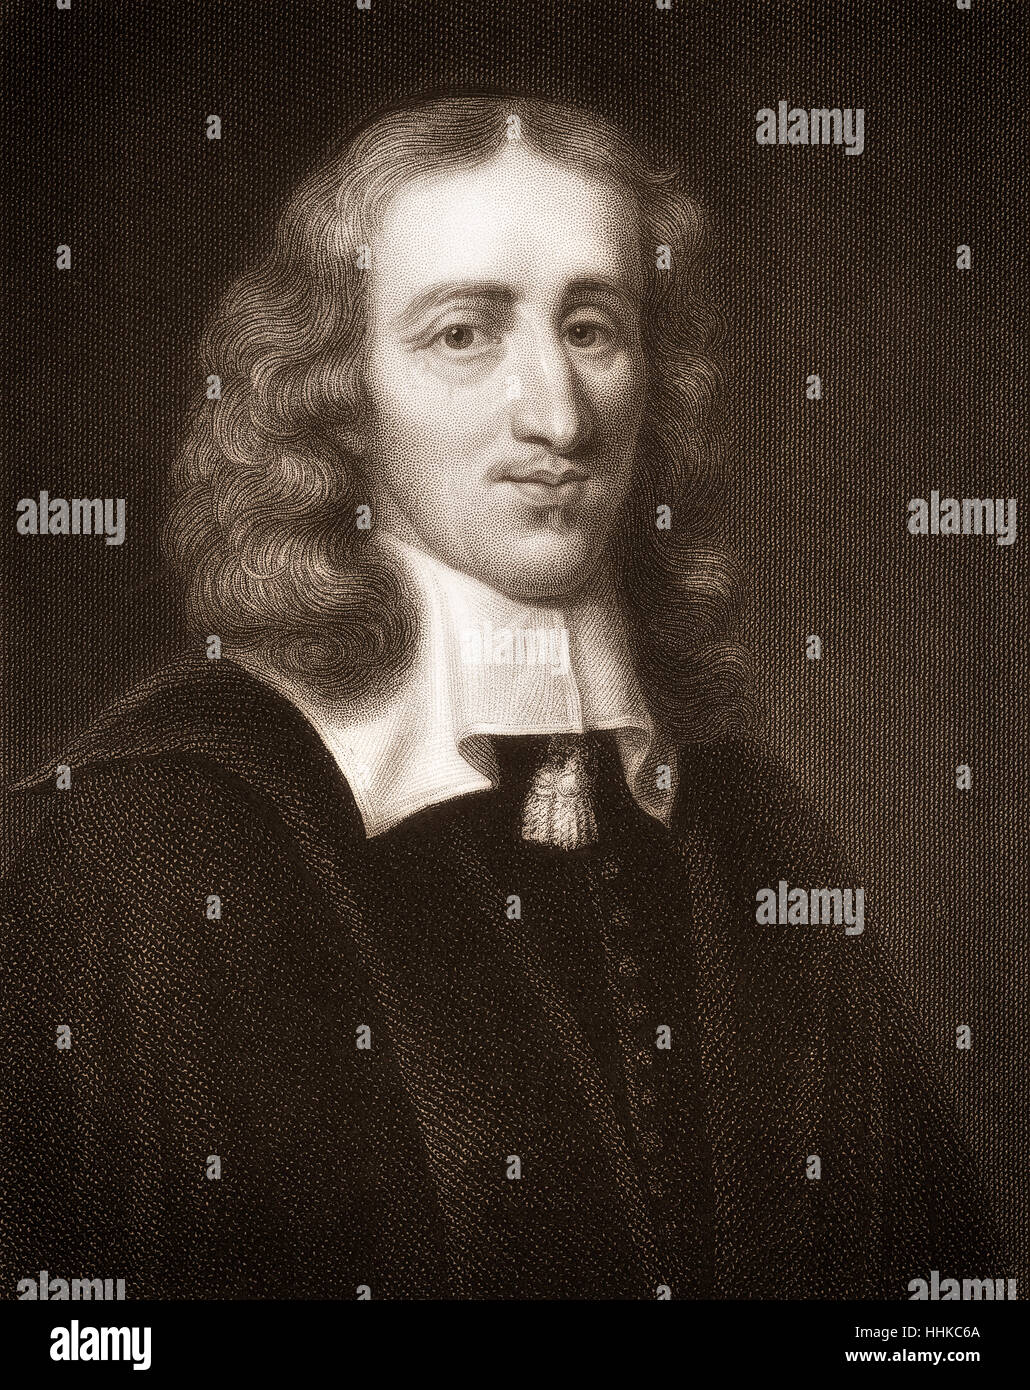 Johan de Witt or Jan de Wit, 1625 - 1672, Dutch statesman - Stock Image